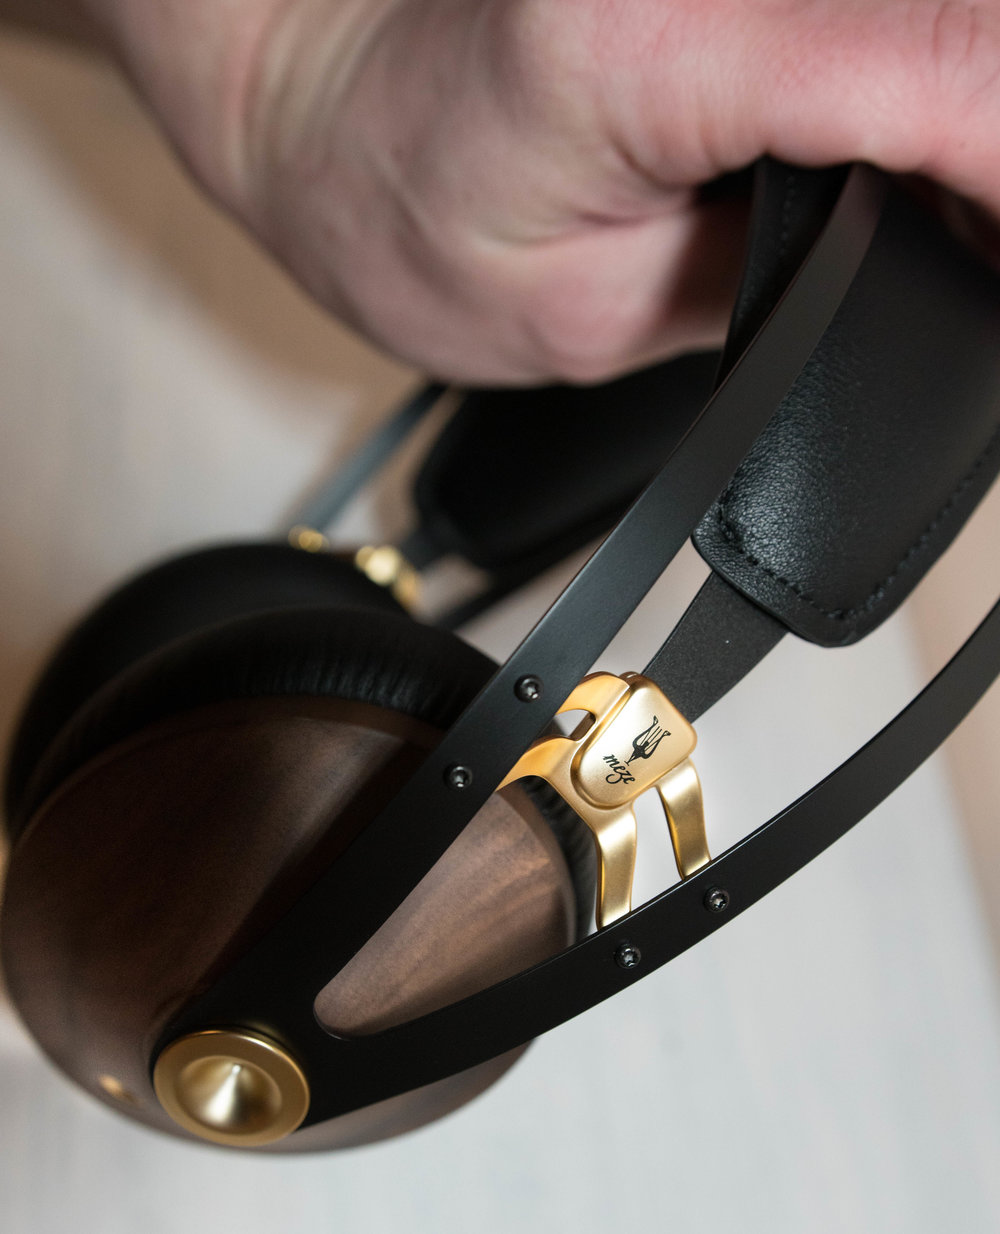 Elastic loaded heaband is very comfortable for prolonged use of the headphones.